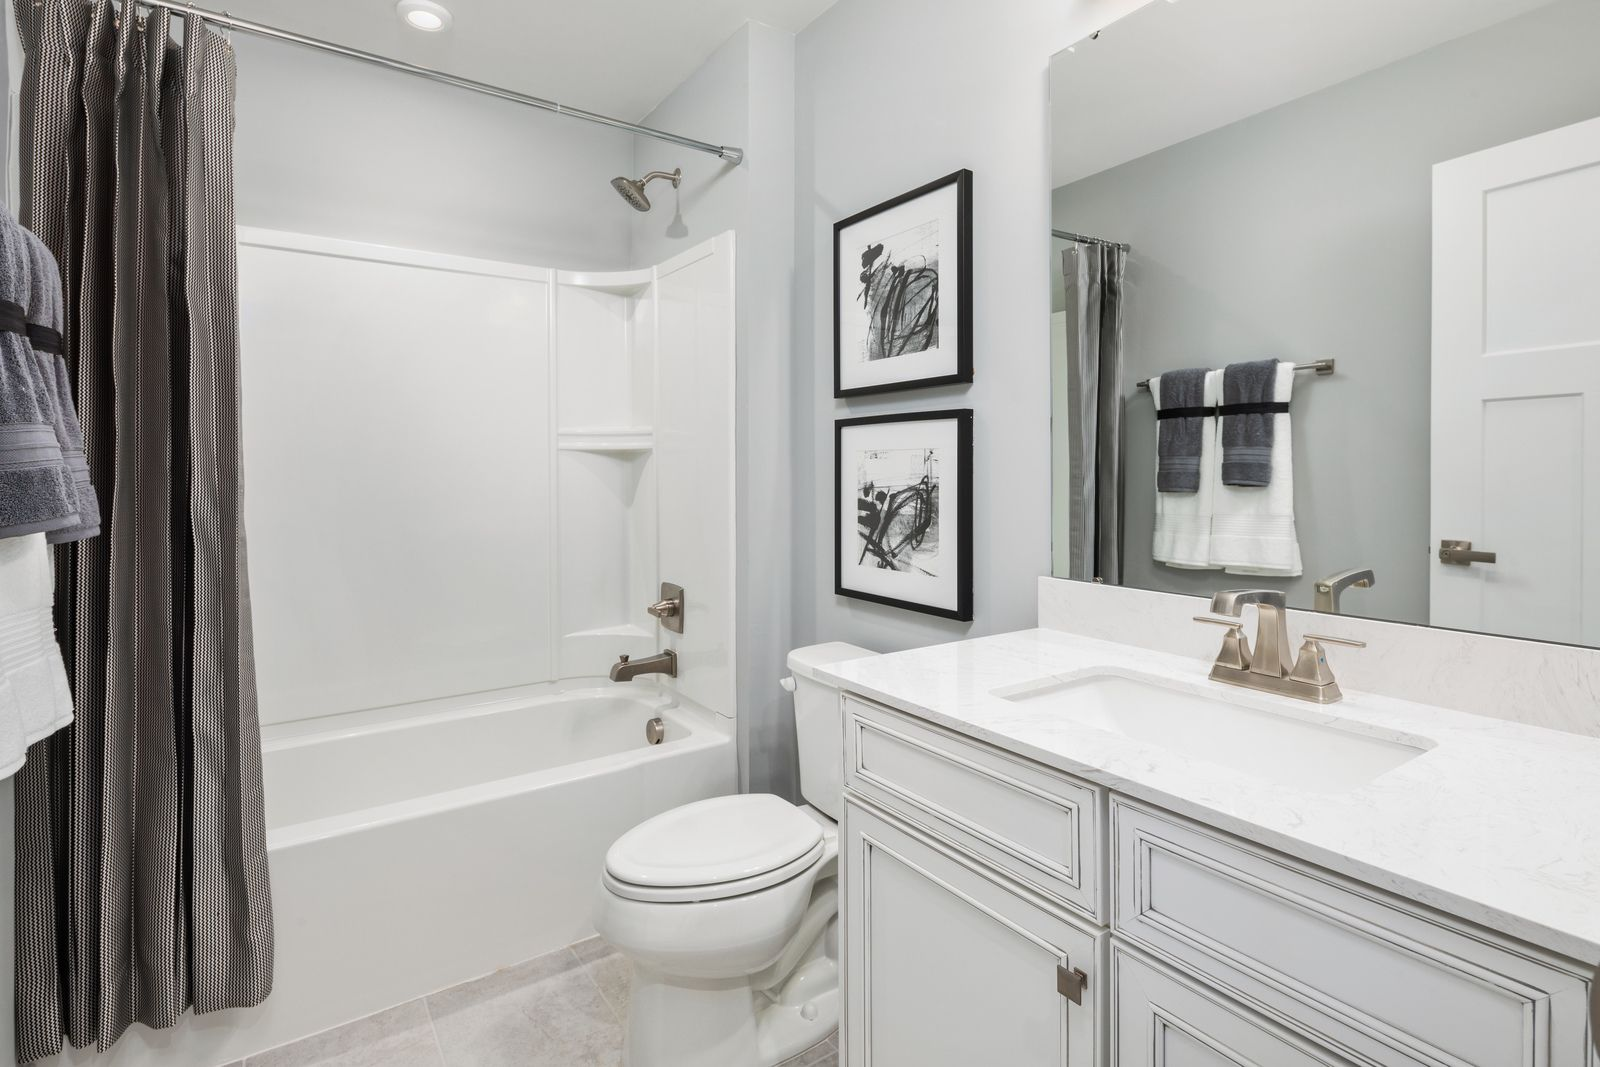 Bathroom featured in the Savannah By Ryan Homes in Washington, MD